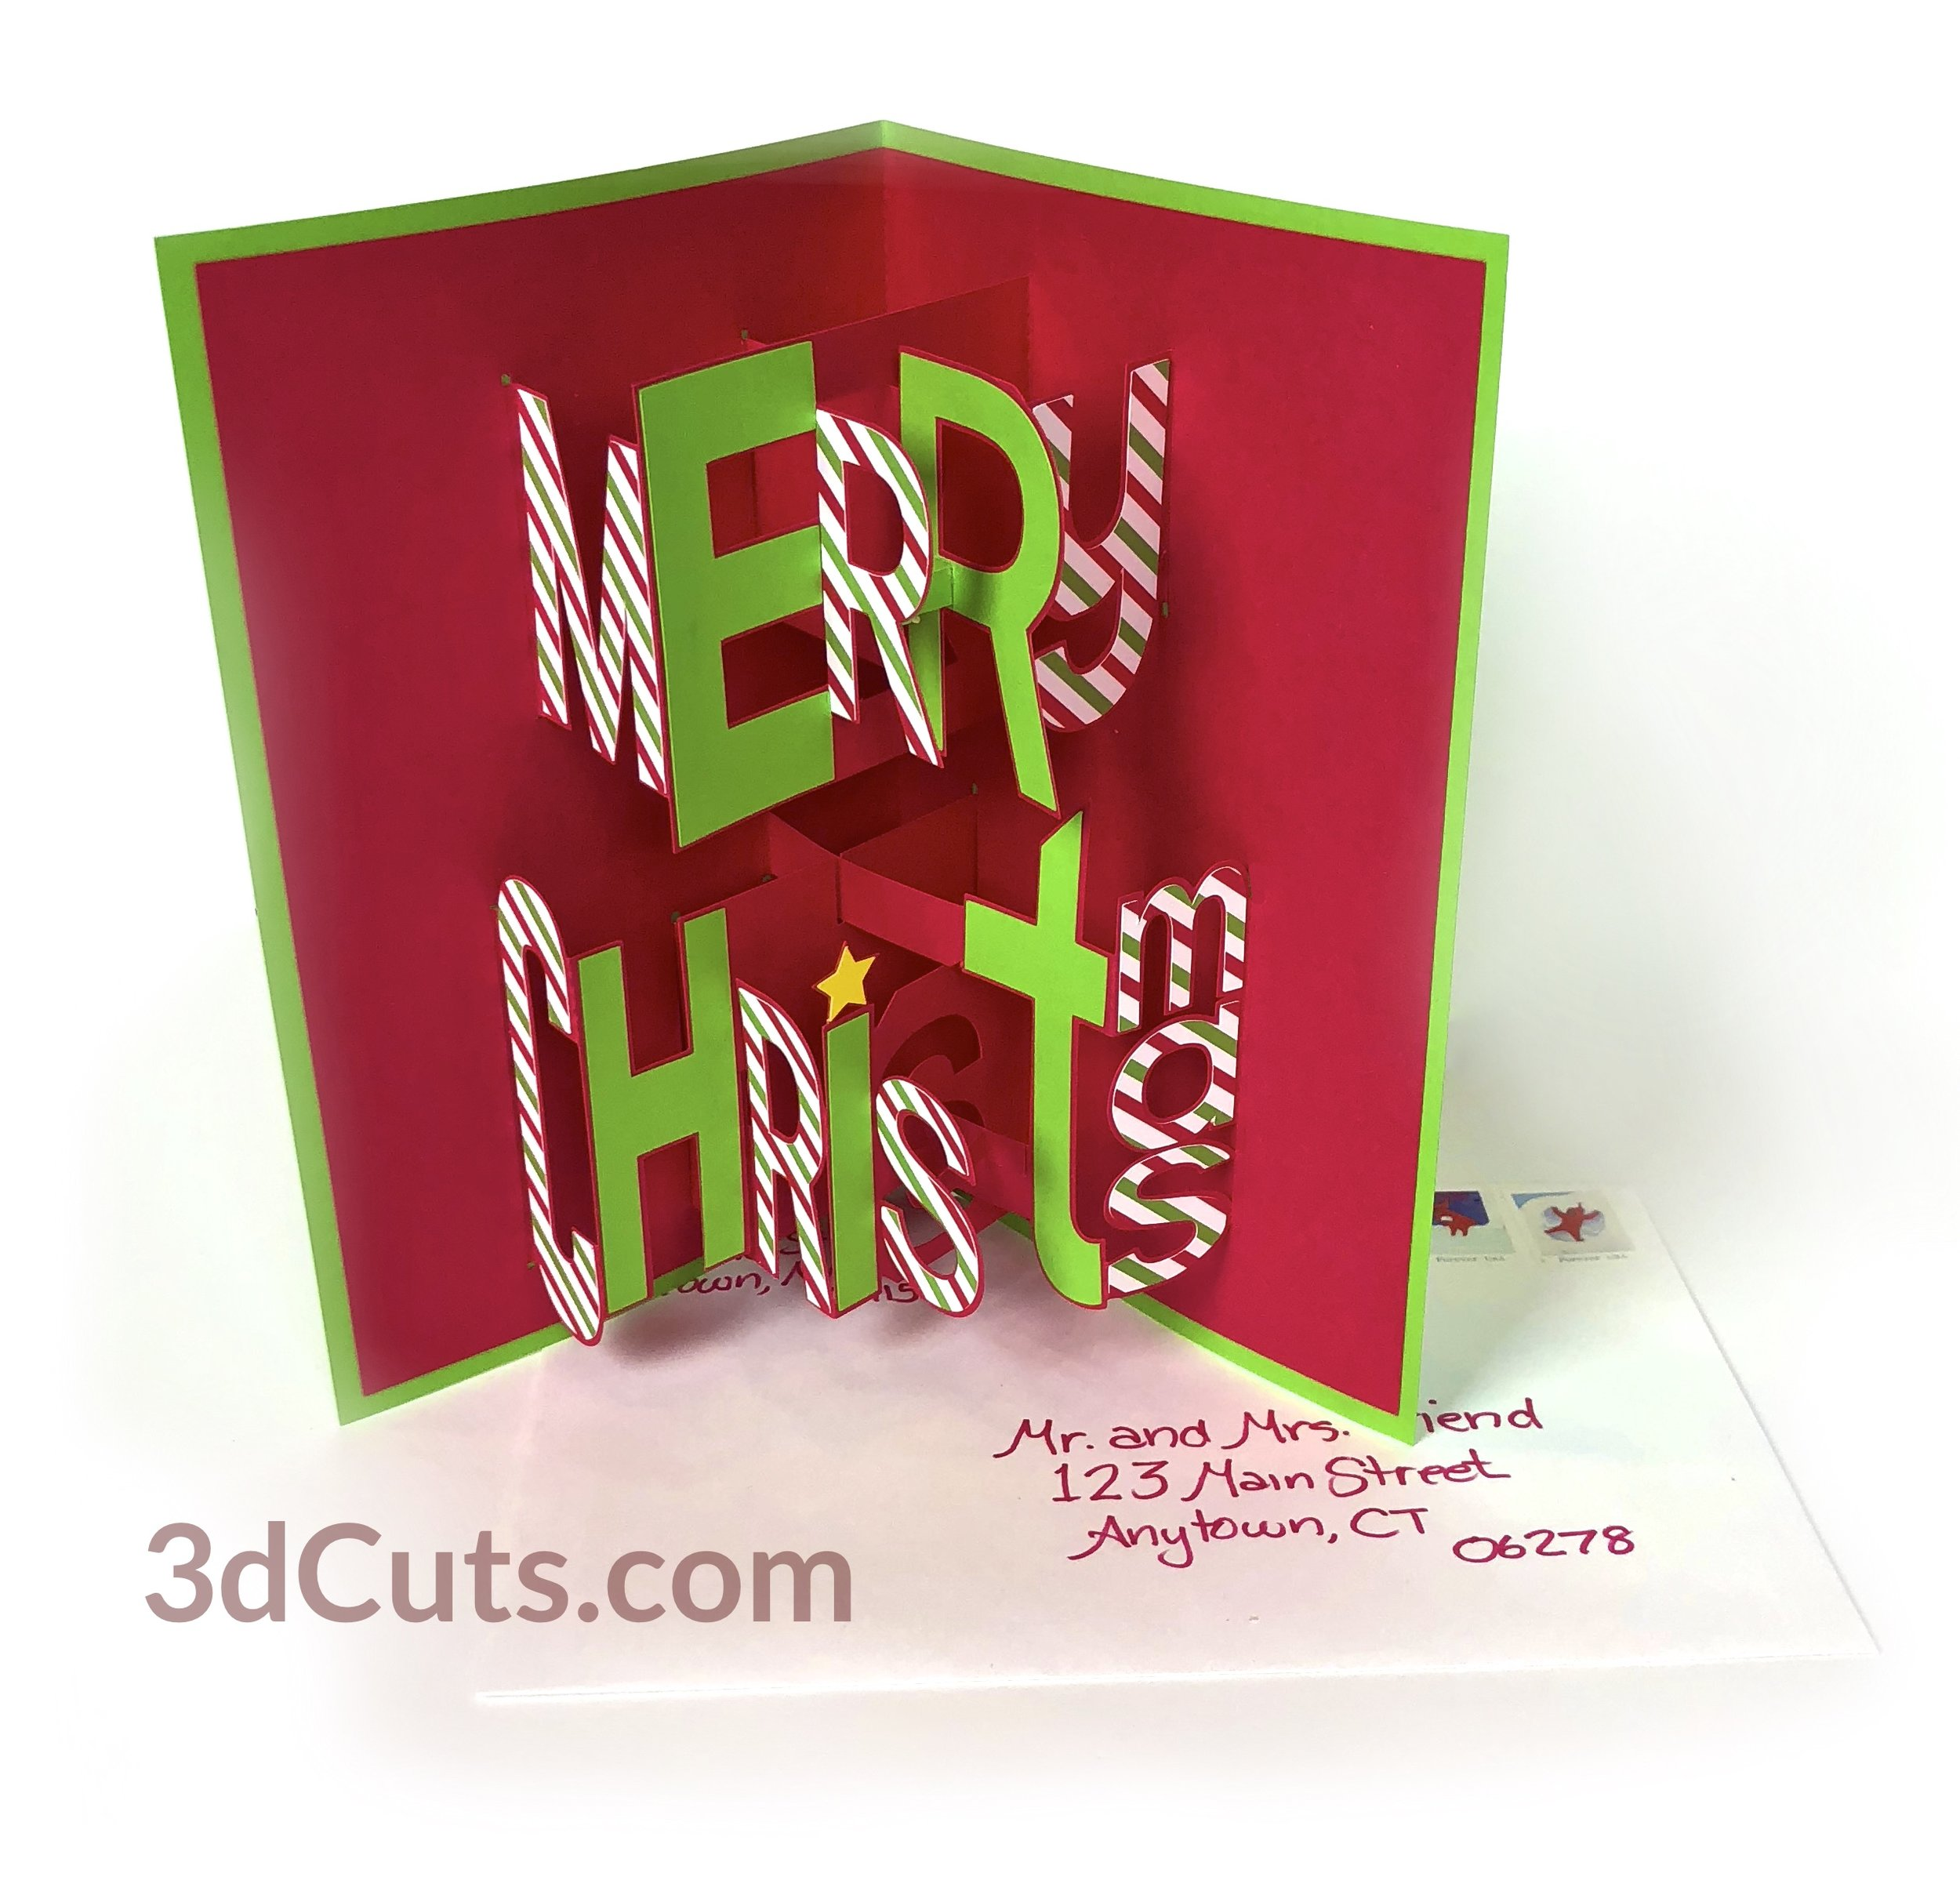 Merry Christmas Pop-up card - whimsy font, 3DCuts.com, Marji Roy, 3D cutting files in .svg, .dxf, and .pdf formats for use with Silhouette, Cricut and other cutting machines, paper crafting files